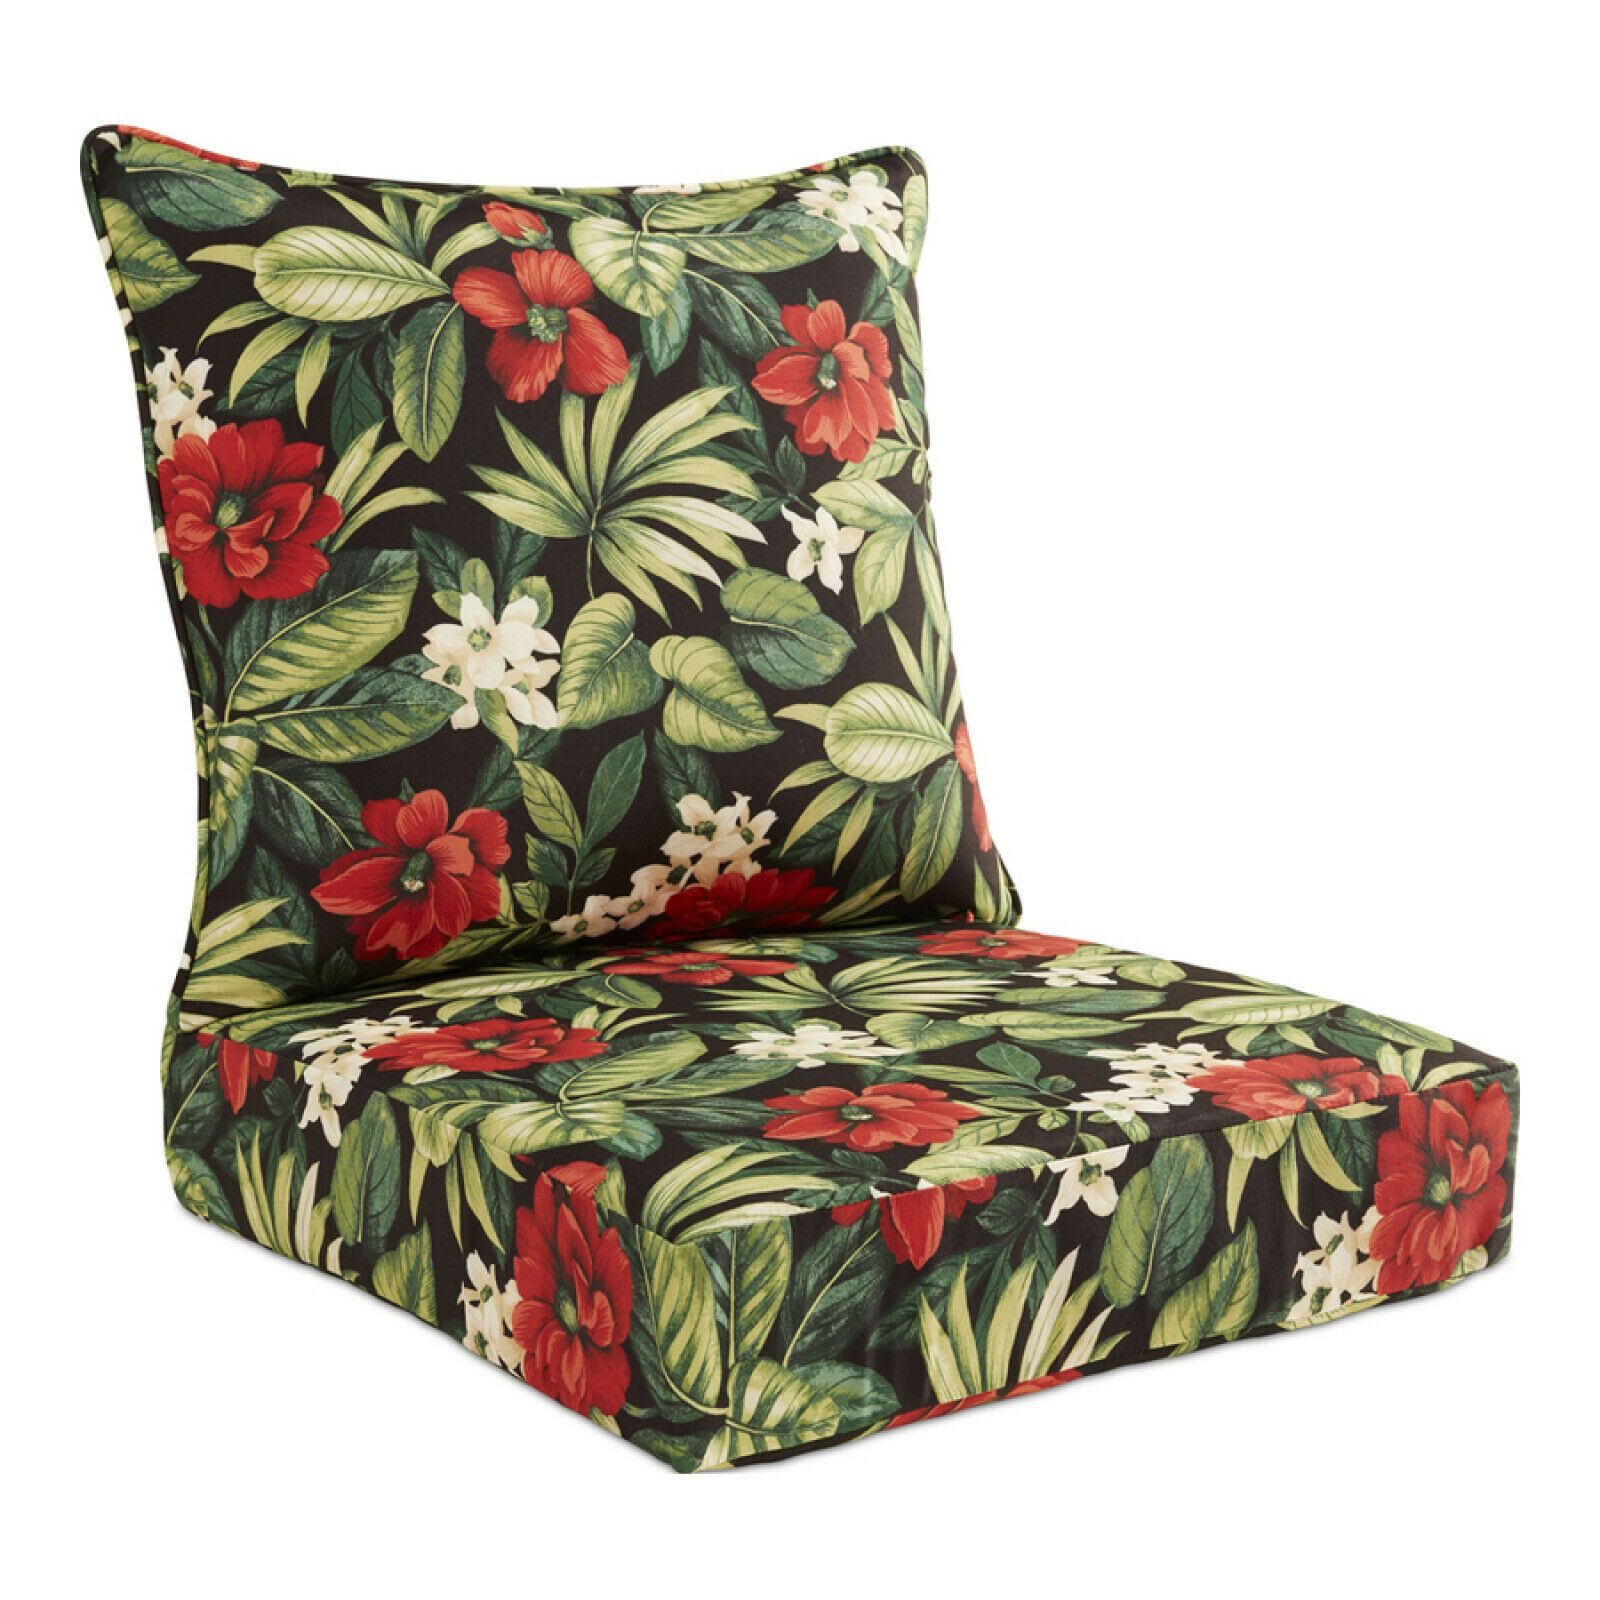 2 Piece Deep Seat Patio Chair Cushion Polyester Tropical Sanibel